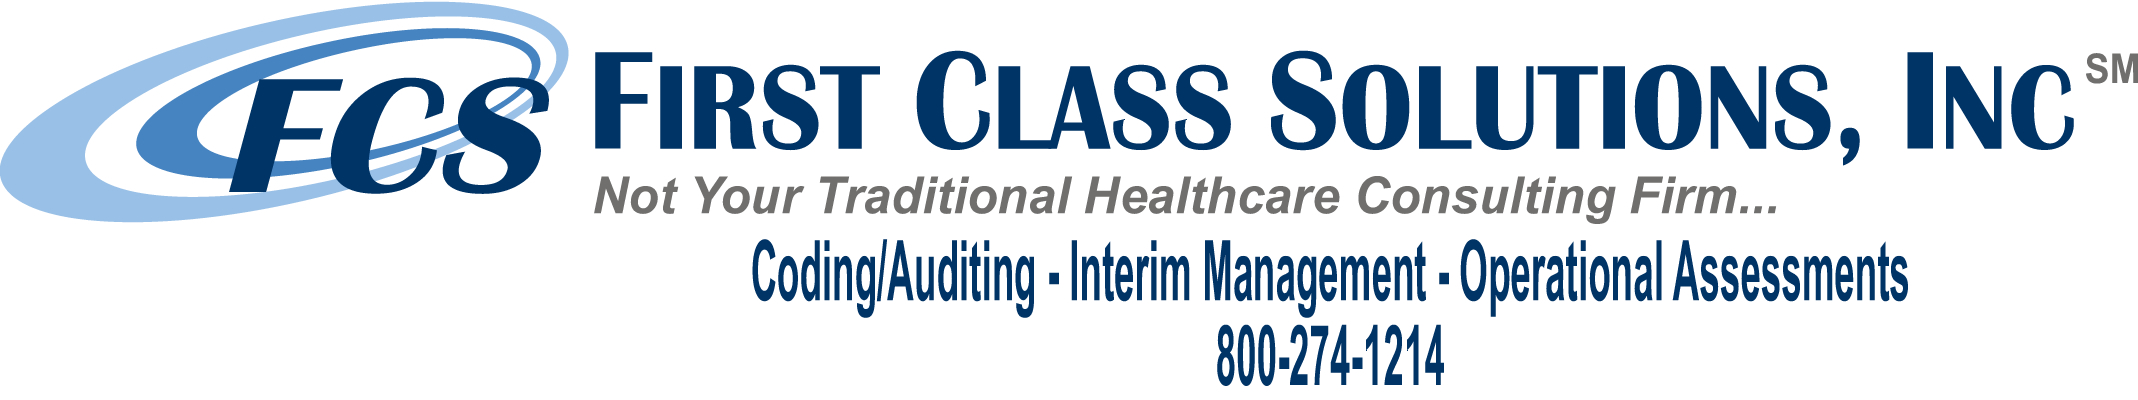 First Class Solutions, Inc.